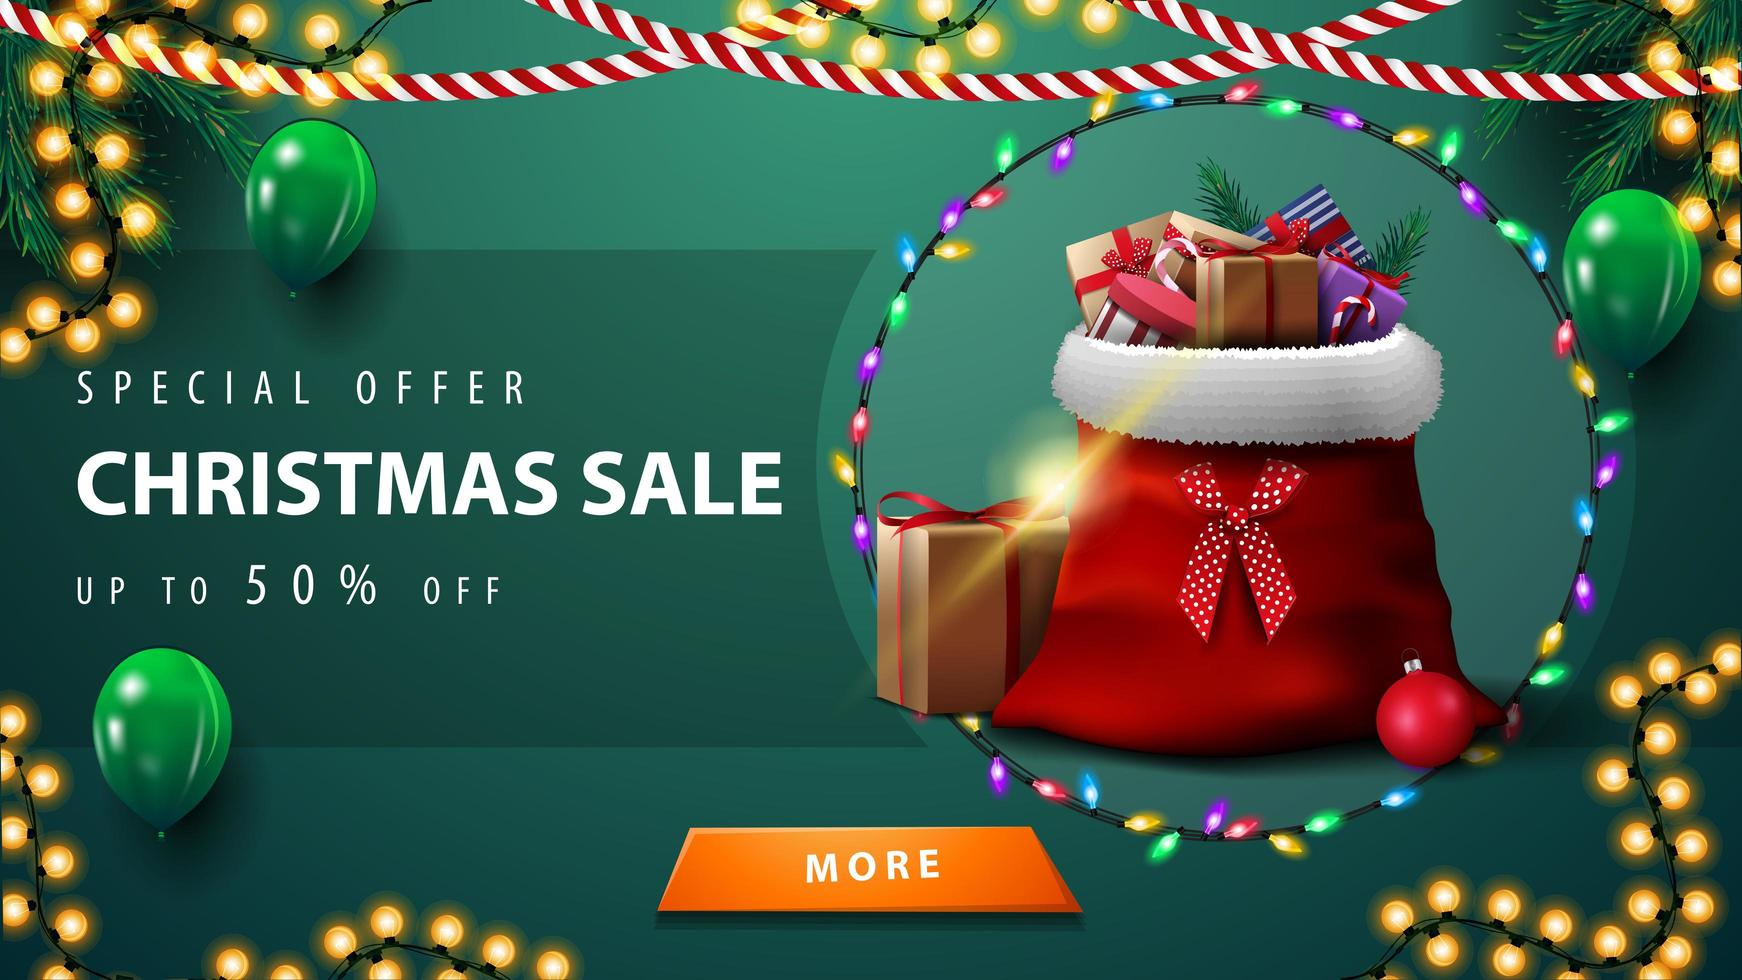 Special offer, Christmas sale, up to 50 off, green discount banner with garlands, green balloons, button and Santa Claus bag with presents vector